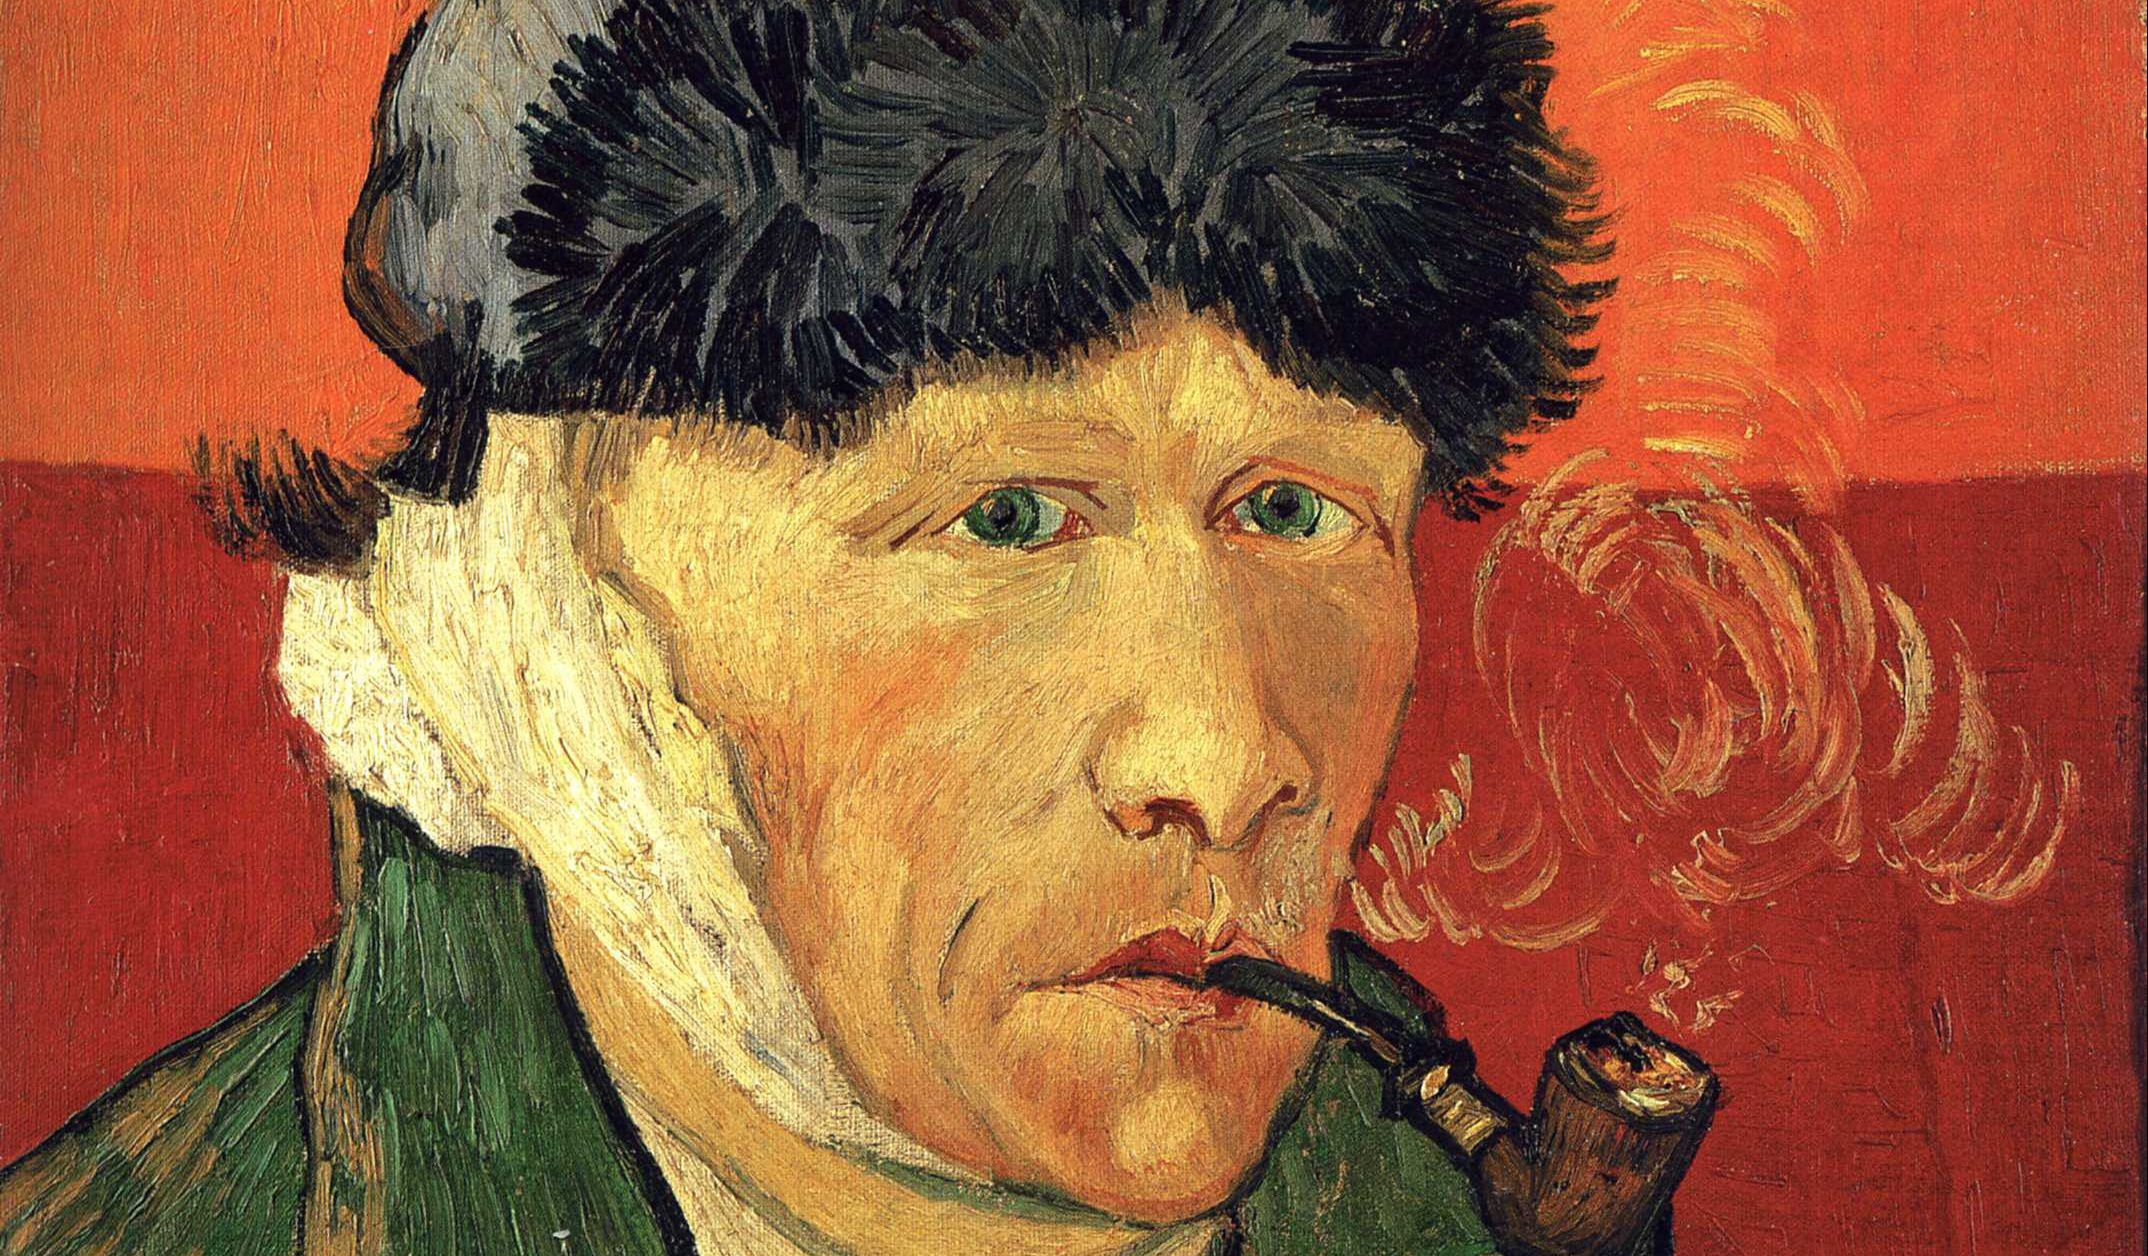 vincent_van_gogh_self_portrait_with_bandaged_ear_f529-e1477933403394.jpg